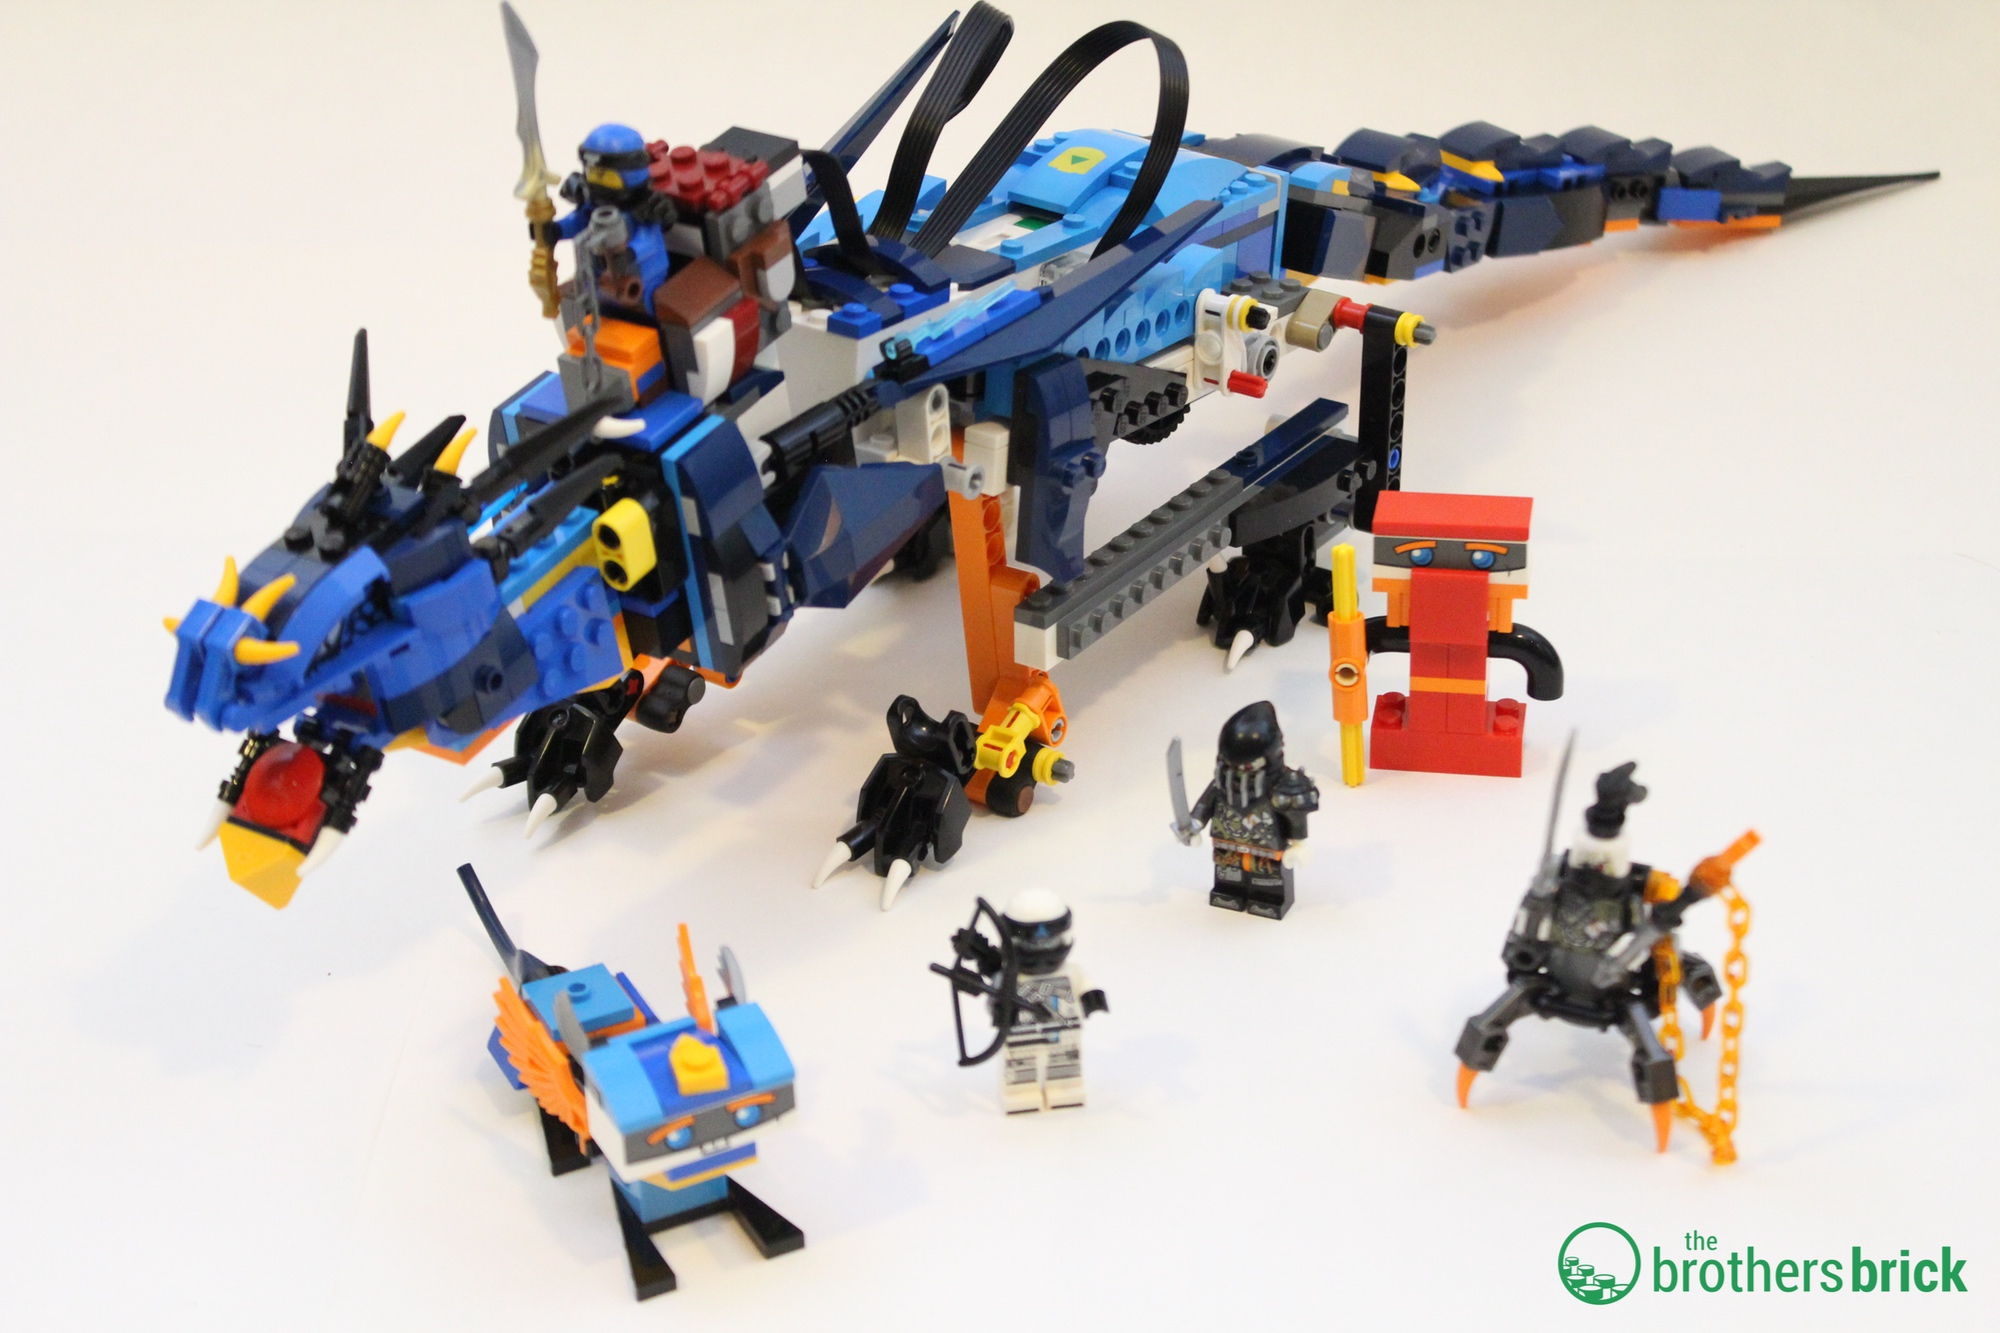 LEGO 17101 BOOST Creative Toolbox compatibility with LEGO